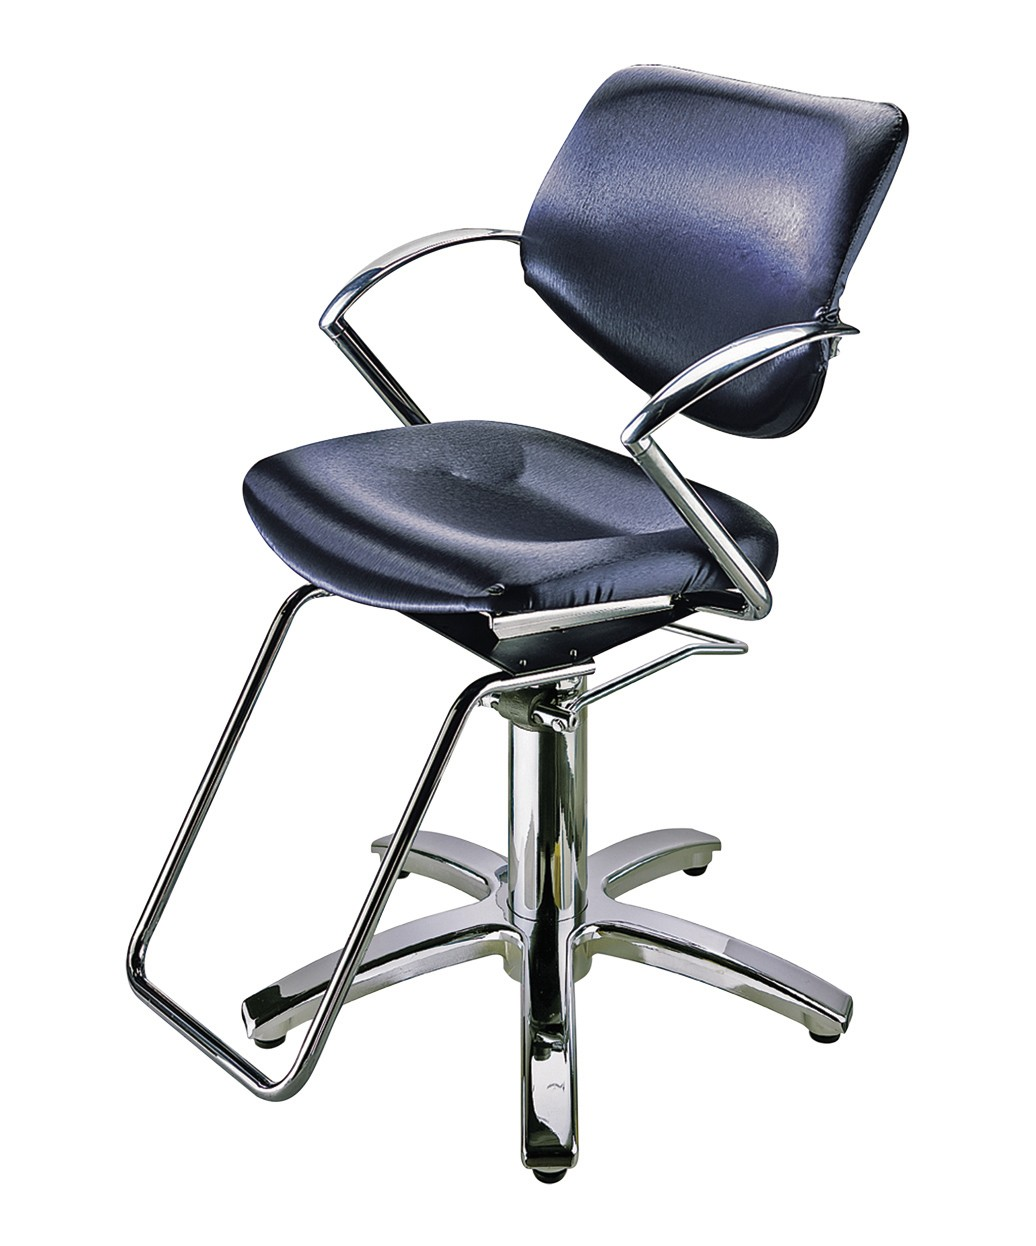 belmont barber chair parts chairs at pier one takara st 790 sara styling